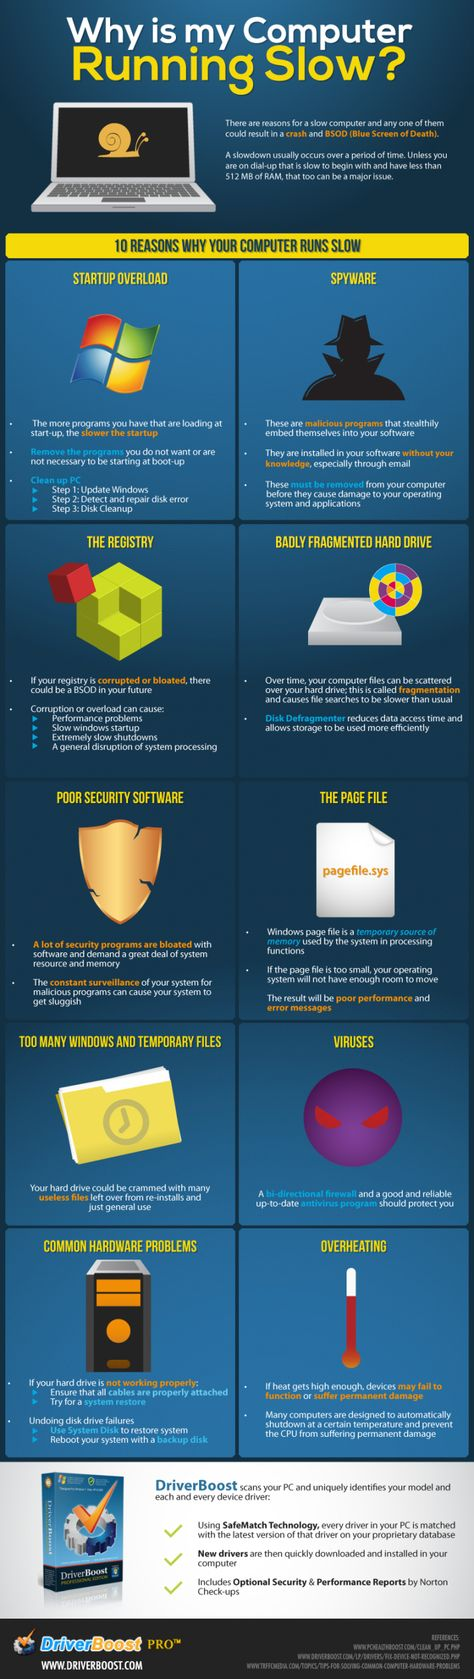 """Please visit https://www.facebook.com/shaunssiliconshack for more information. Please """"Like"""" my page :-) Why is my computer running slow? #infografia #infographic"""